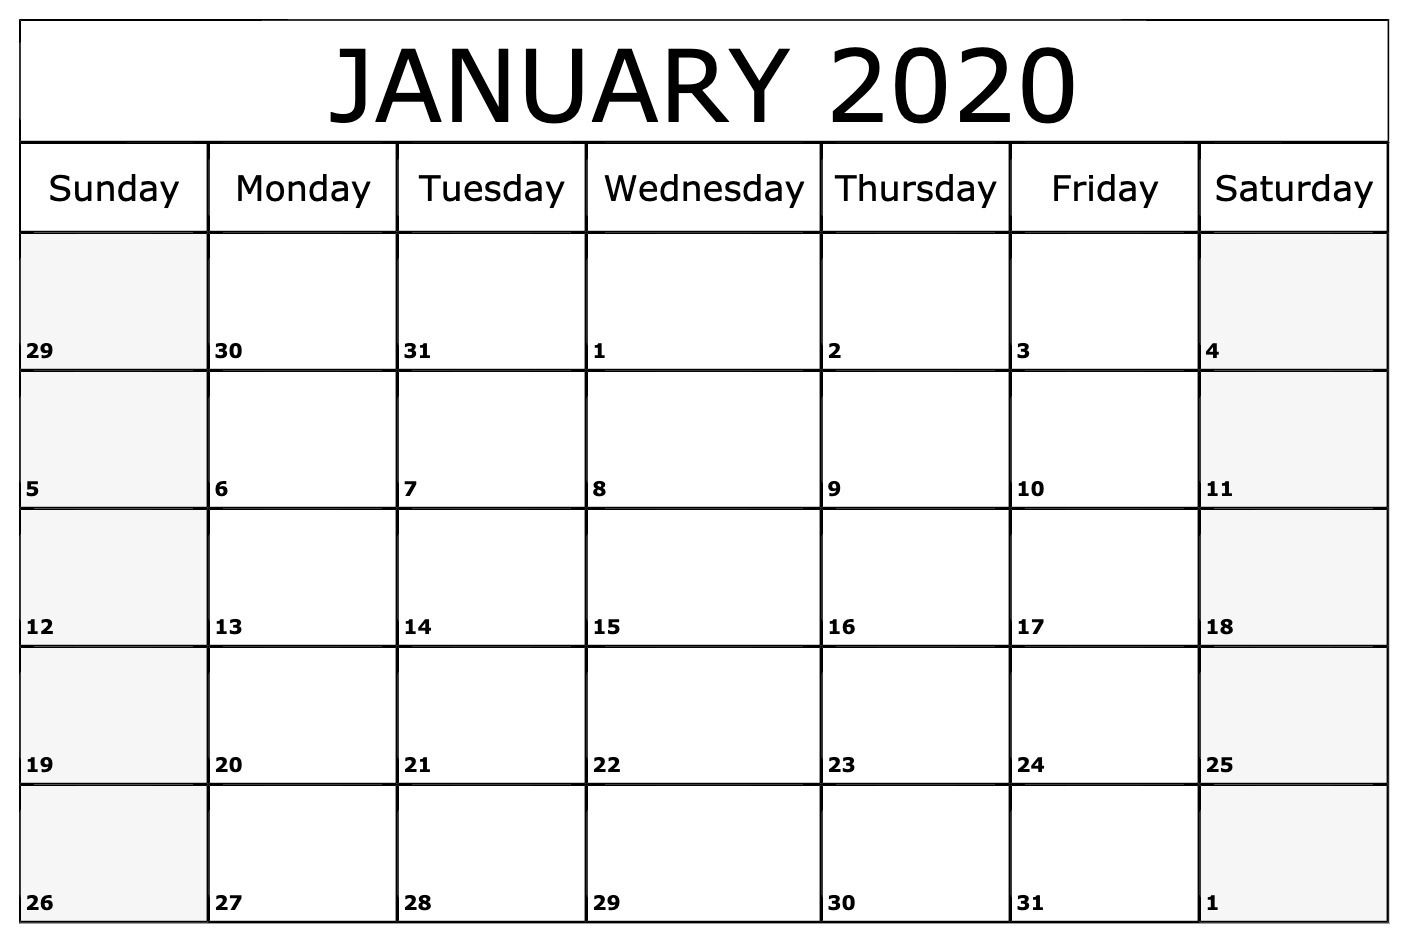 Free January 2020 Calendar Template - Togo.wpart.co